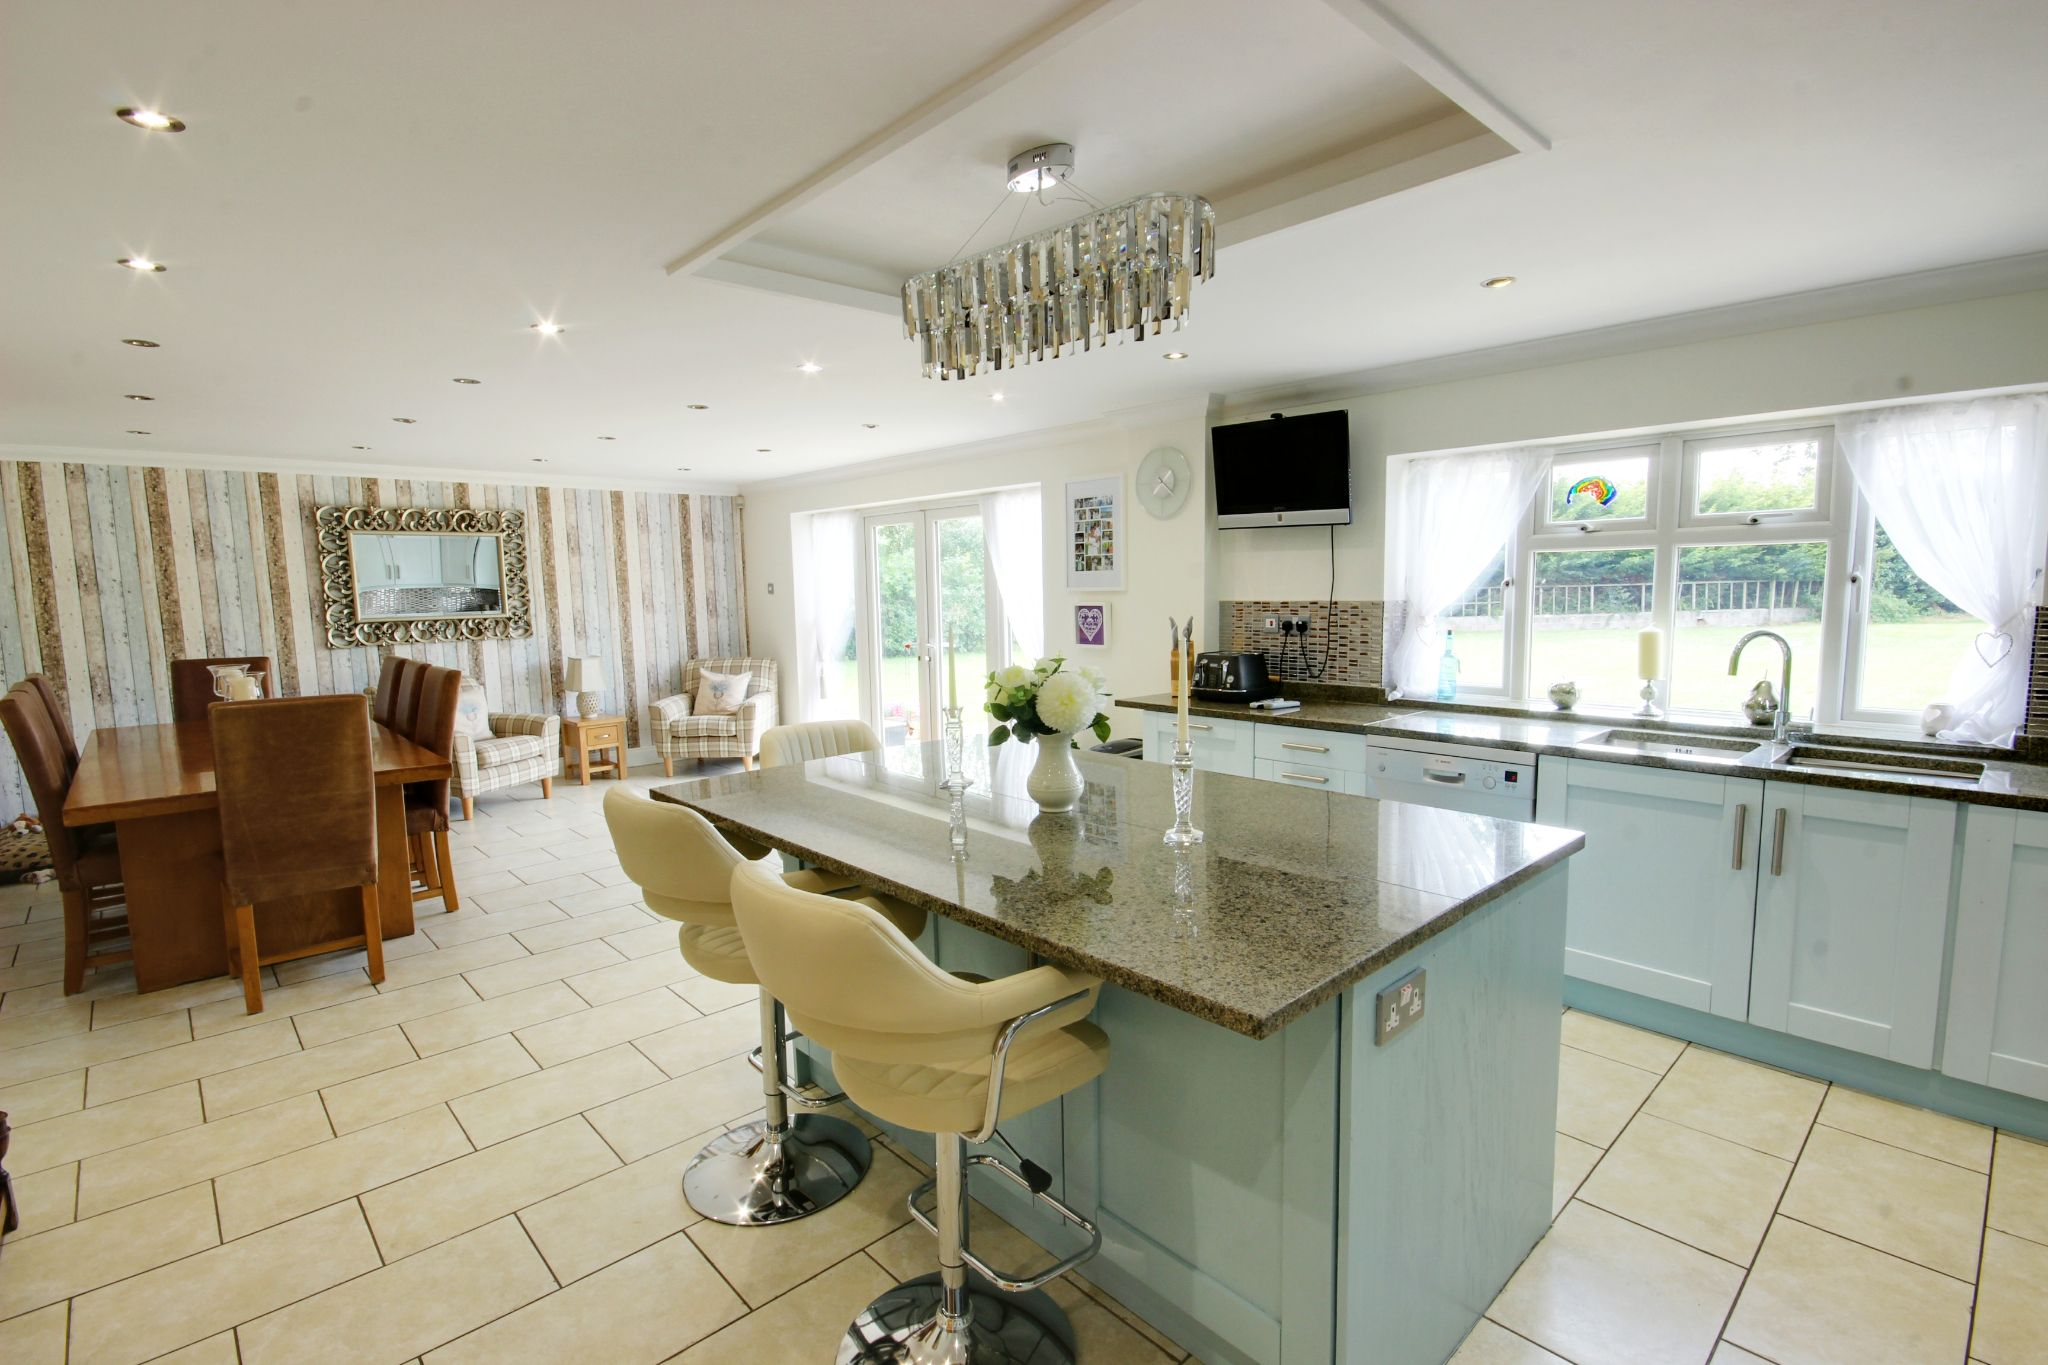 5 bedroom detached house SSTC in North Mymms - Photograph 1